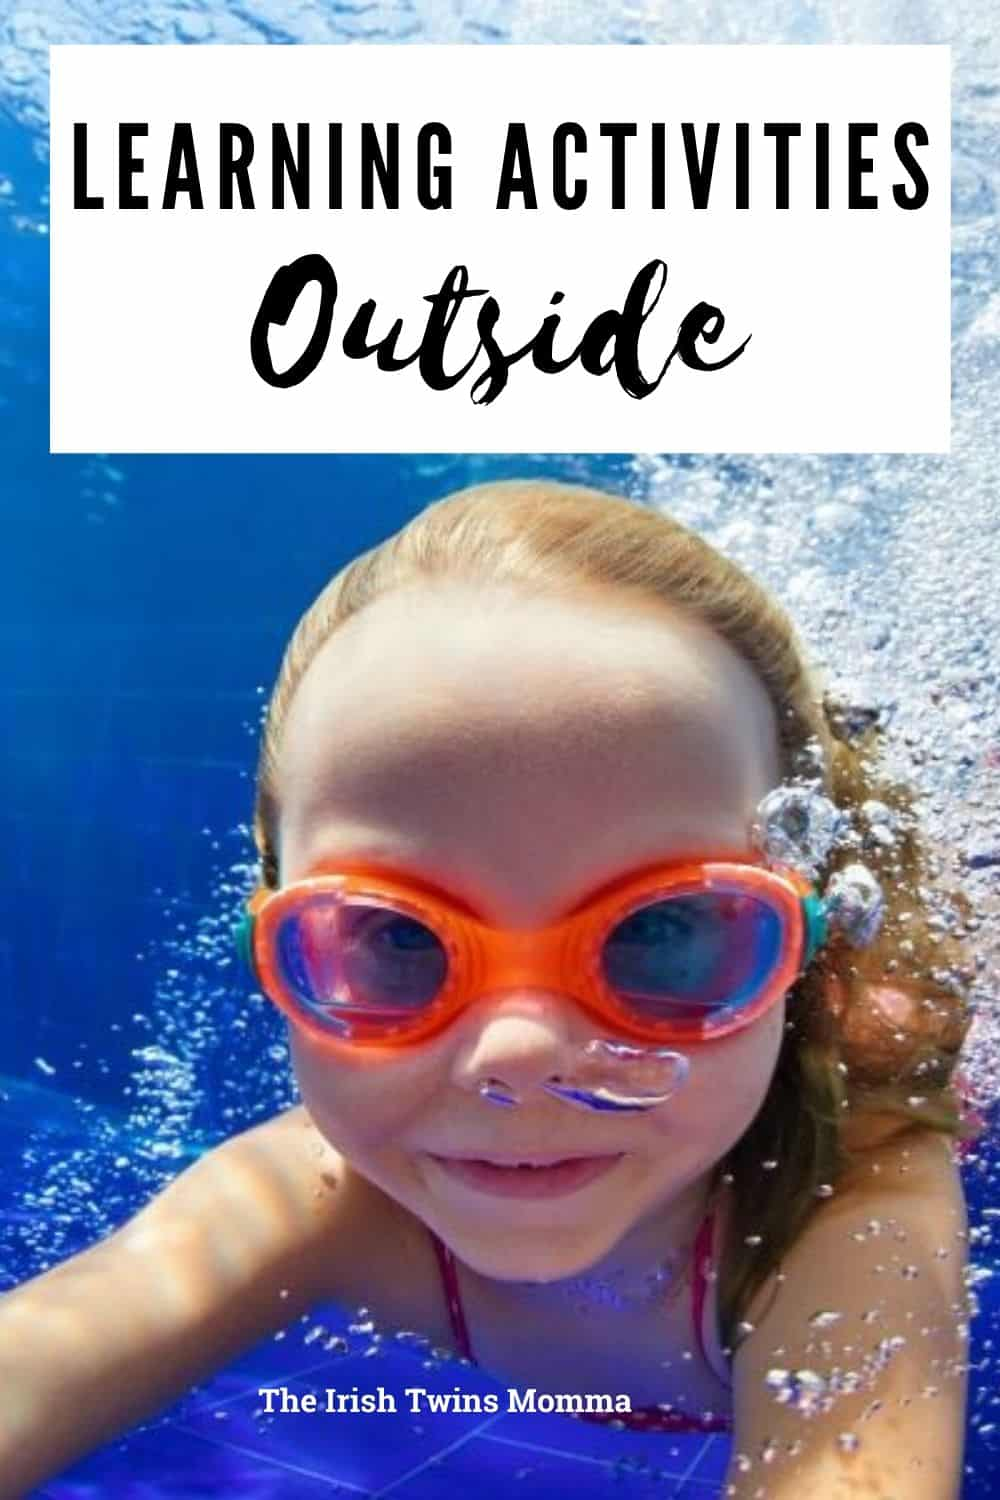 Getting the kids outside is a great way to encourage fun while learning. It's free and the possibilities are endless. Summer months are hot, right? So let's start with some pool fun!